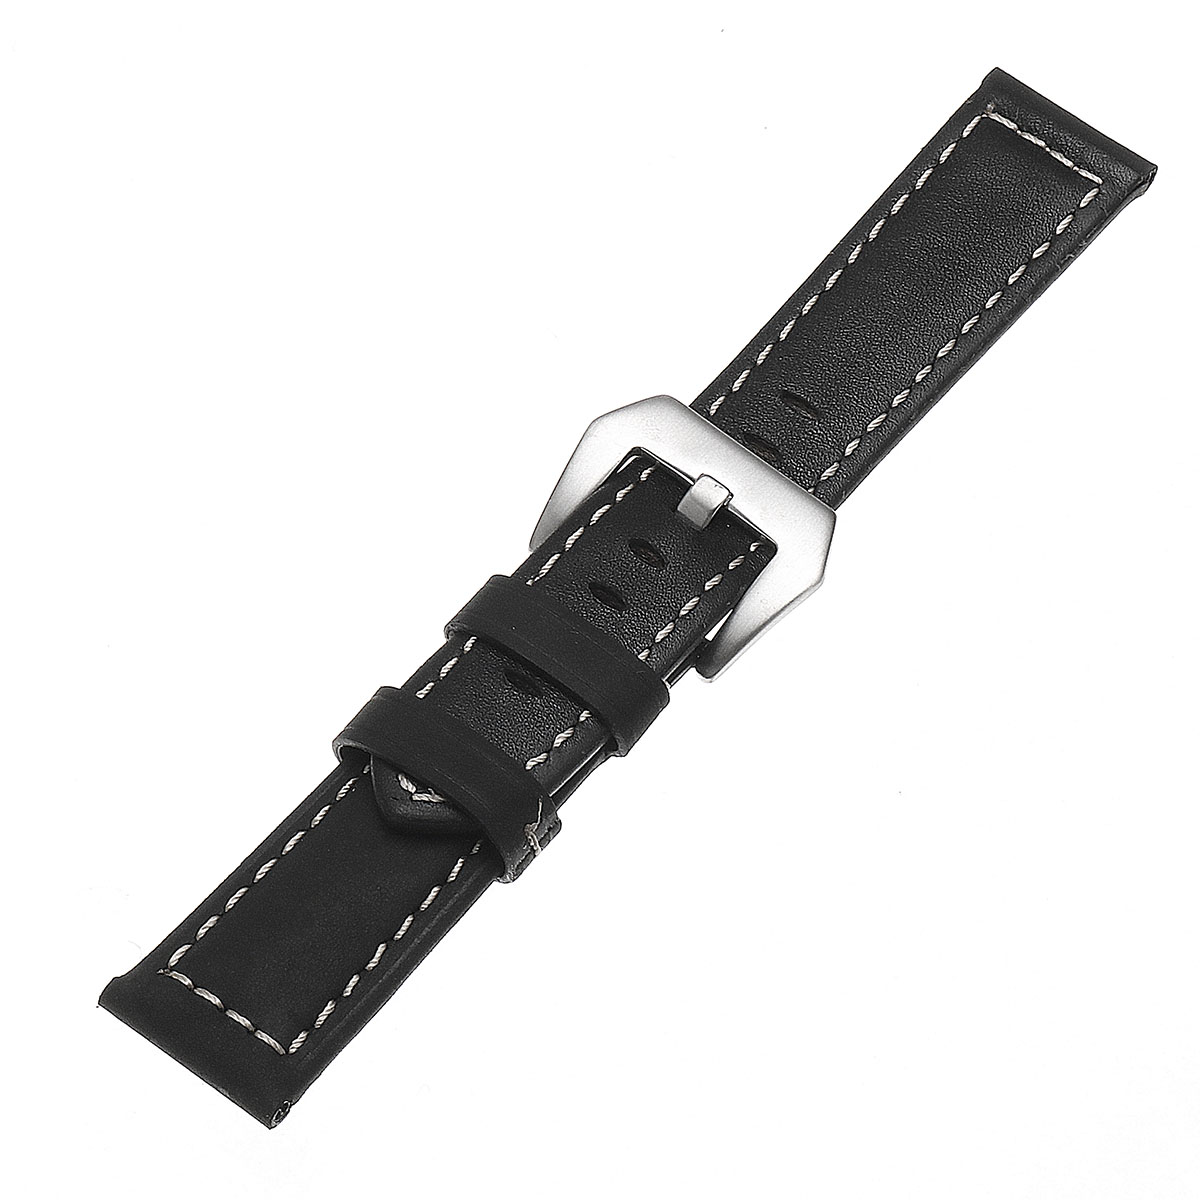 For-Samsung-Gear-S3-Classic-Frontier-Leather-Watch-Band-2-Spring-Bars-Adjustable